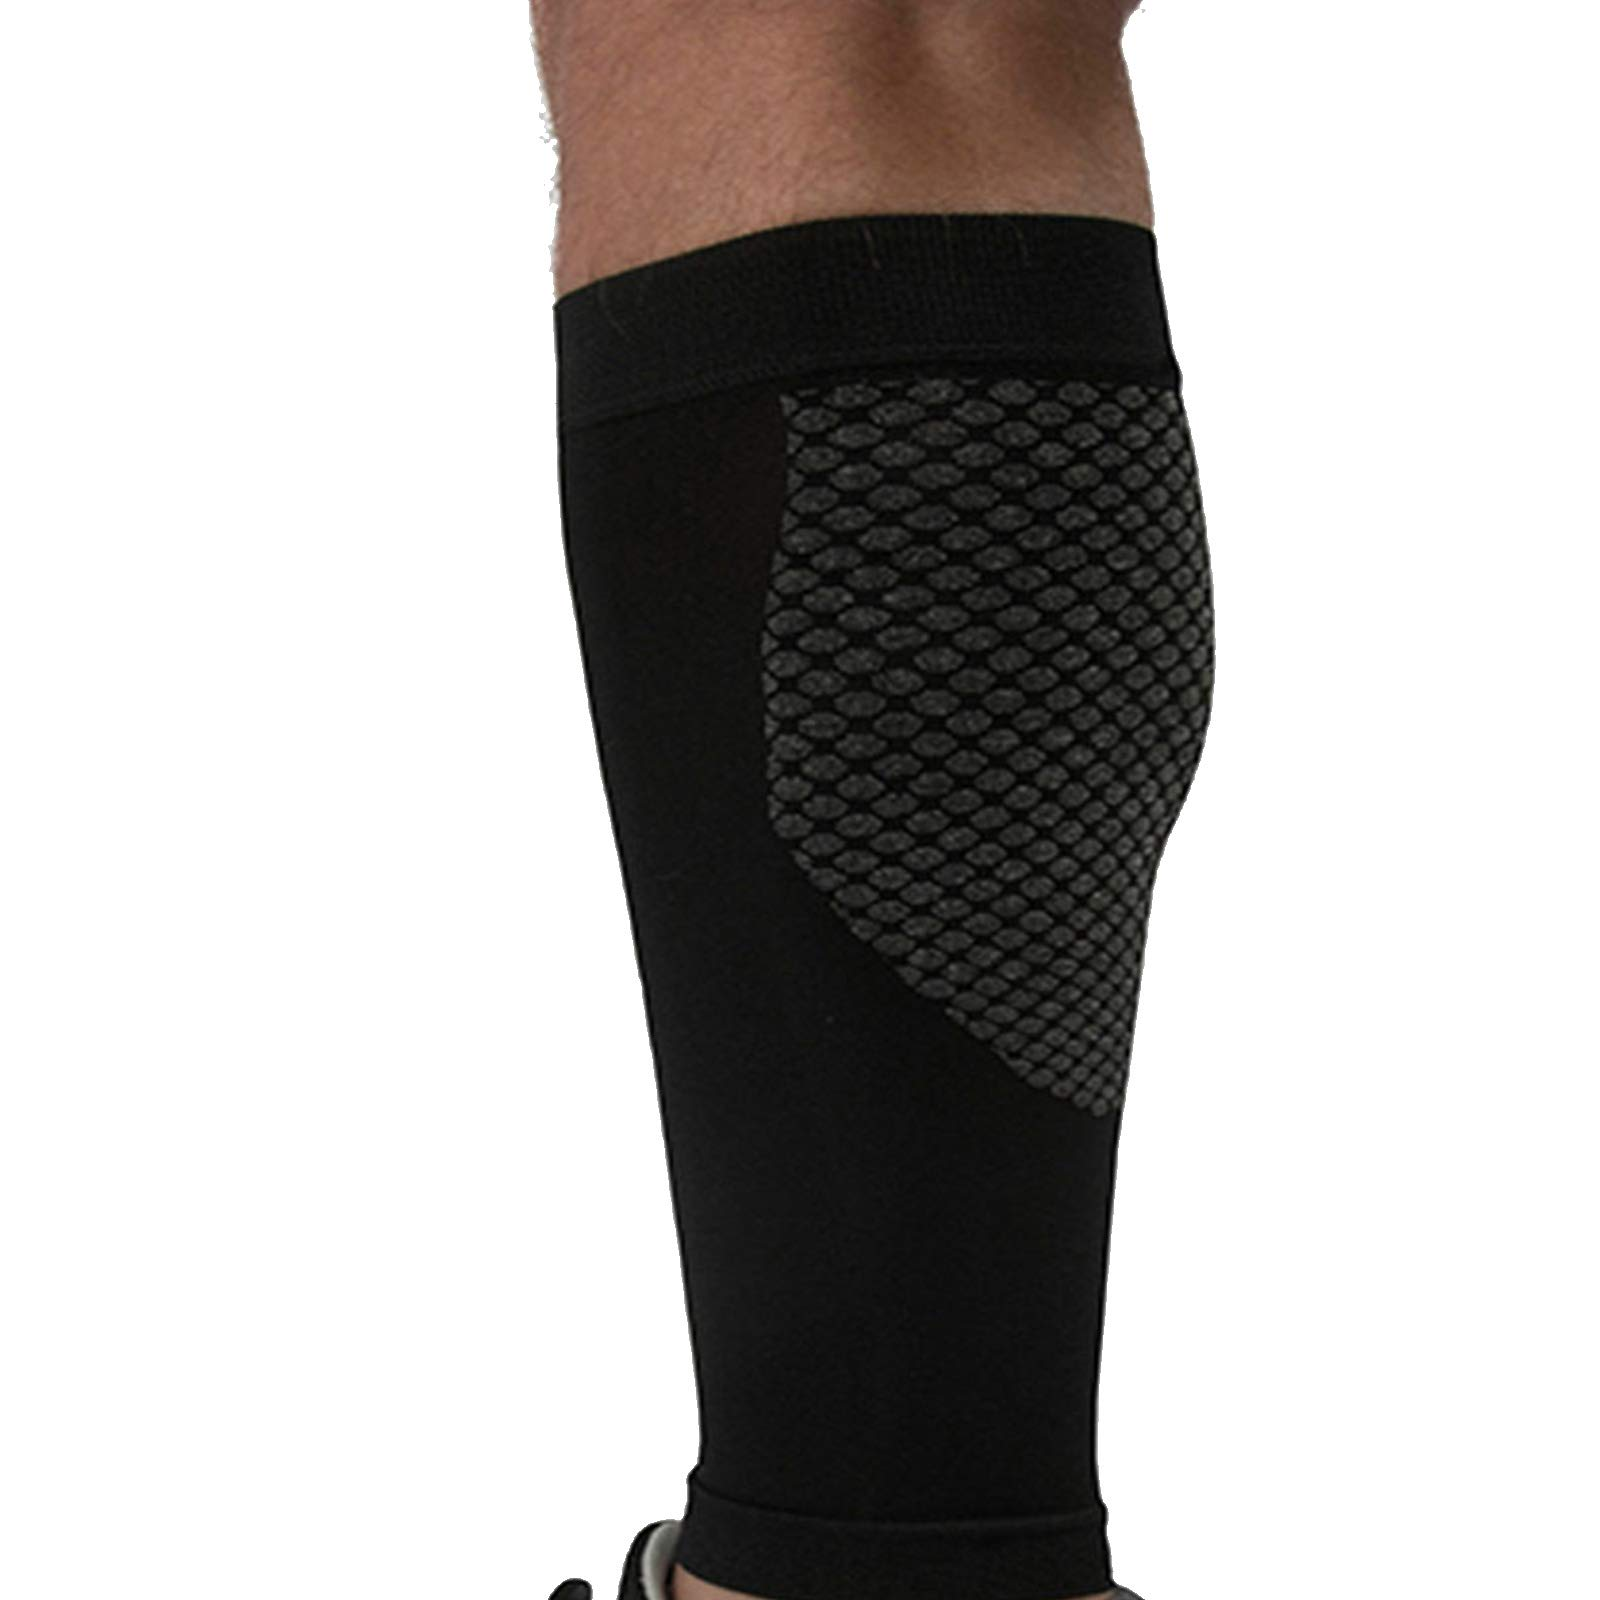 Kinship Comfort Brands® Compression Calf Sleeve Support for Calf Muscle, Shin-Splits and Achilles Pain. Running Accessories for Women Men Compression Calf Sleeves for   1 PR (Available in: S,M,L,XL)